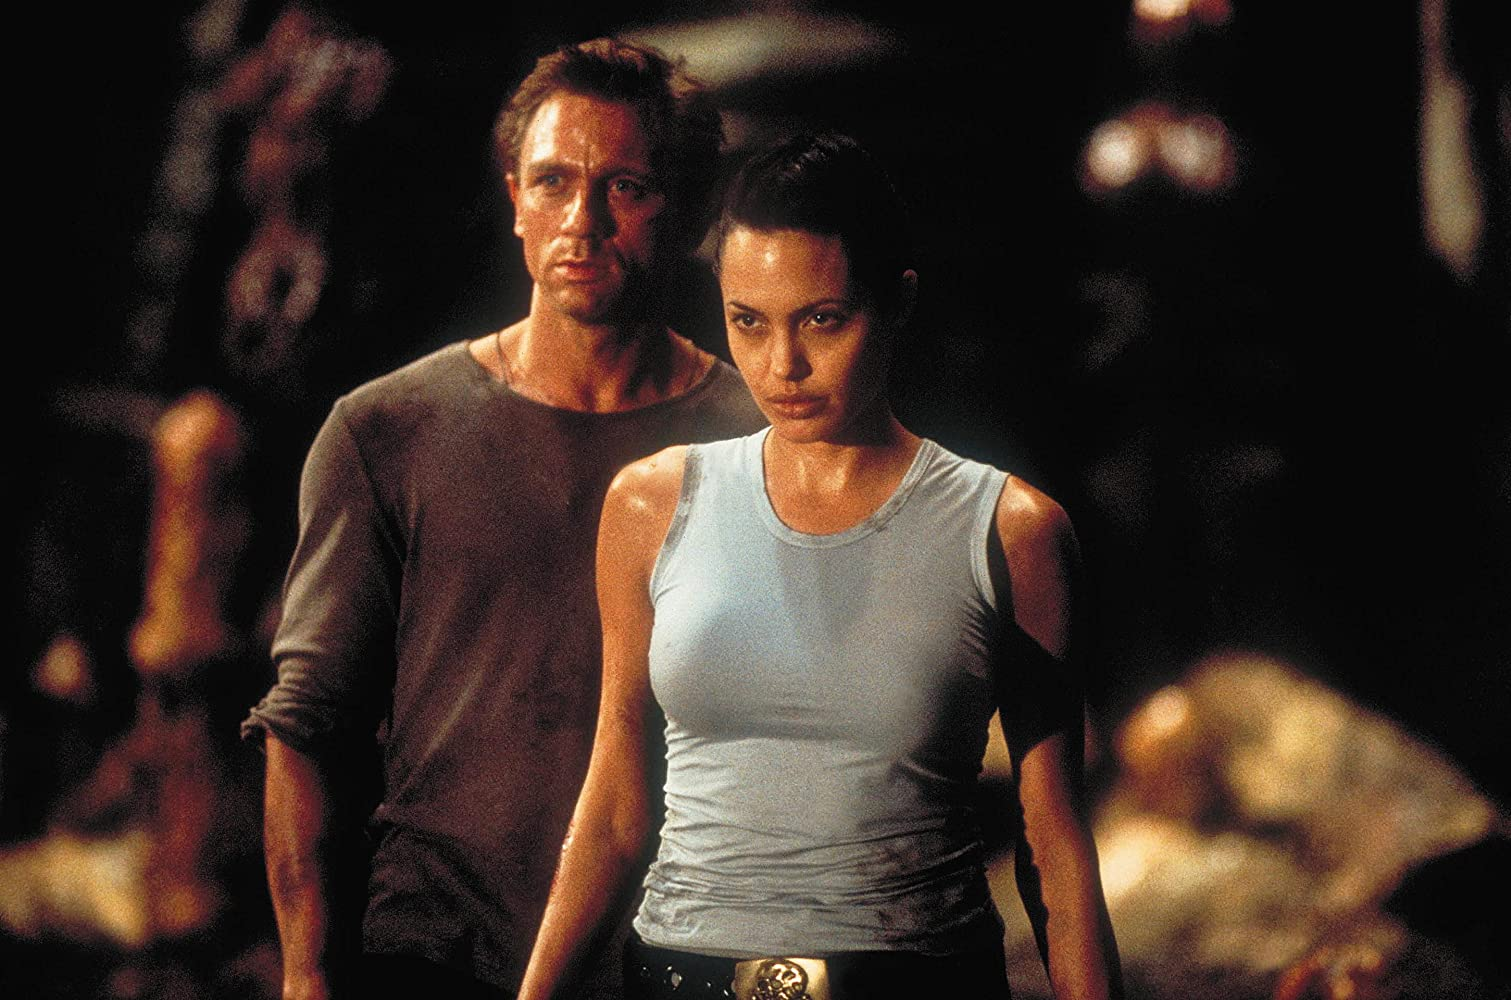 Angelina Jolie and Daniel Craig in Lara Croft: Tomb Raider (2001)